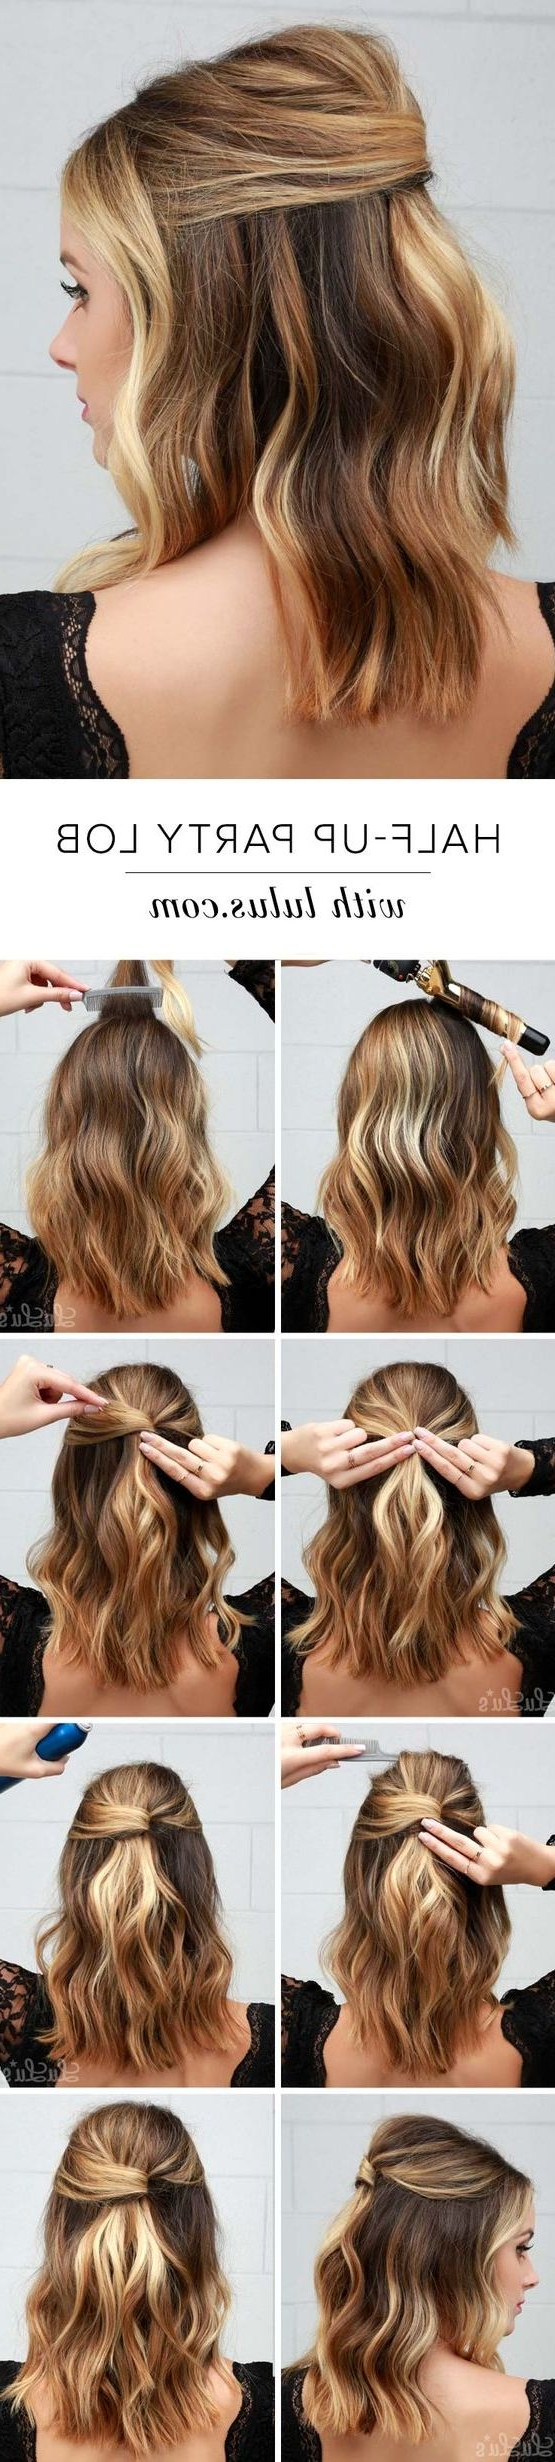 Most Up To Date Half Up Curly Hairstyles With Highlights In 75 Cute & Cool Hairstyles For Girls – For Short, Long & Medium Hair (View 15 of 20)